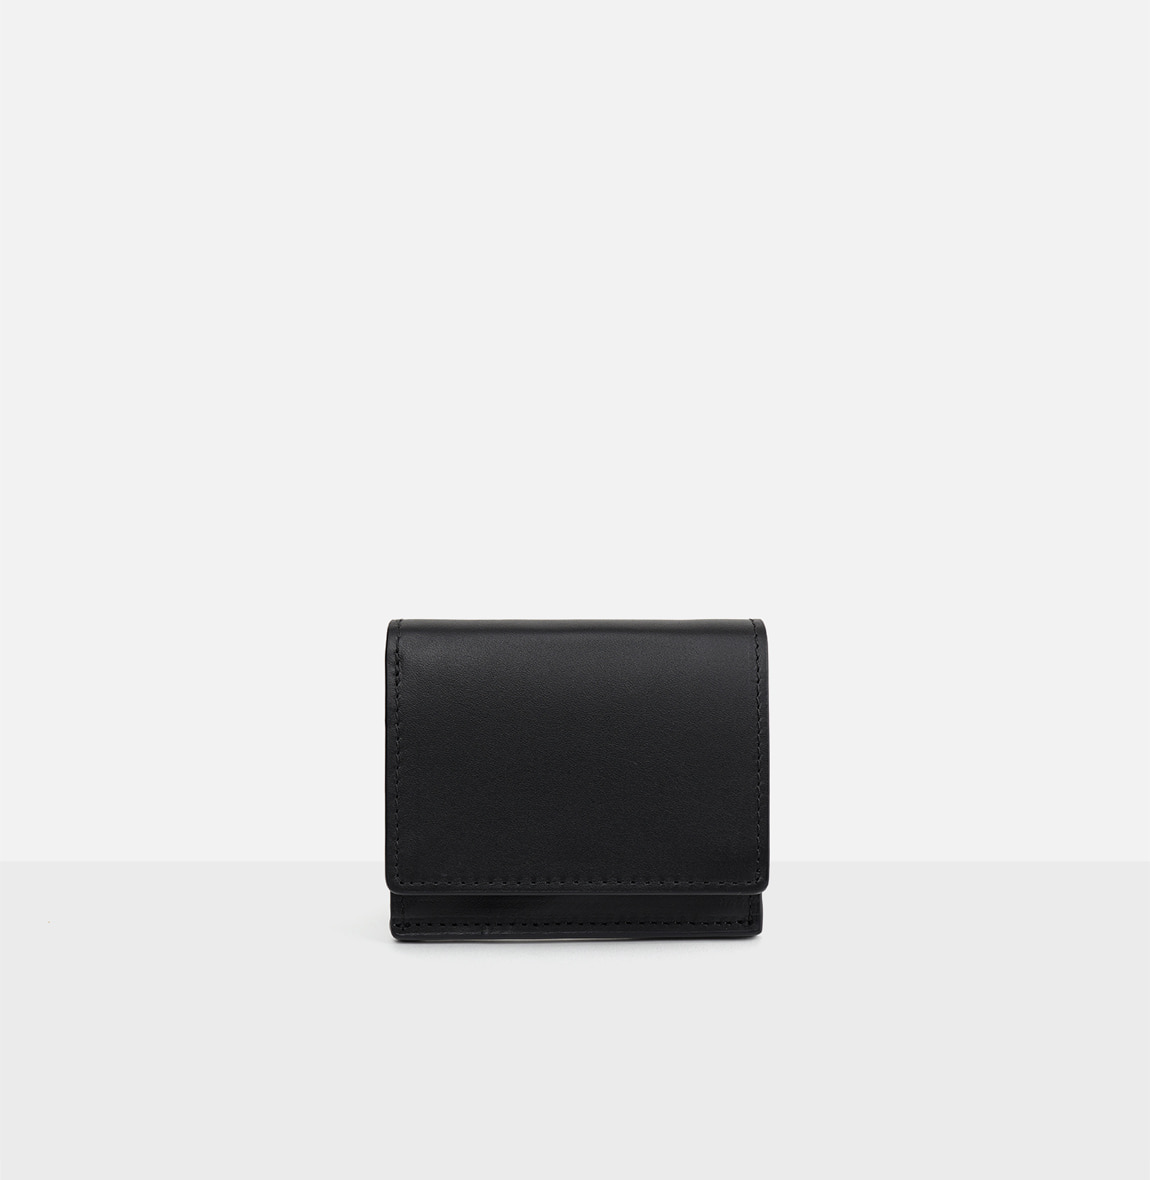 ROH Flap billfold wallet objet Black